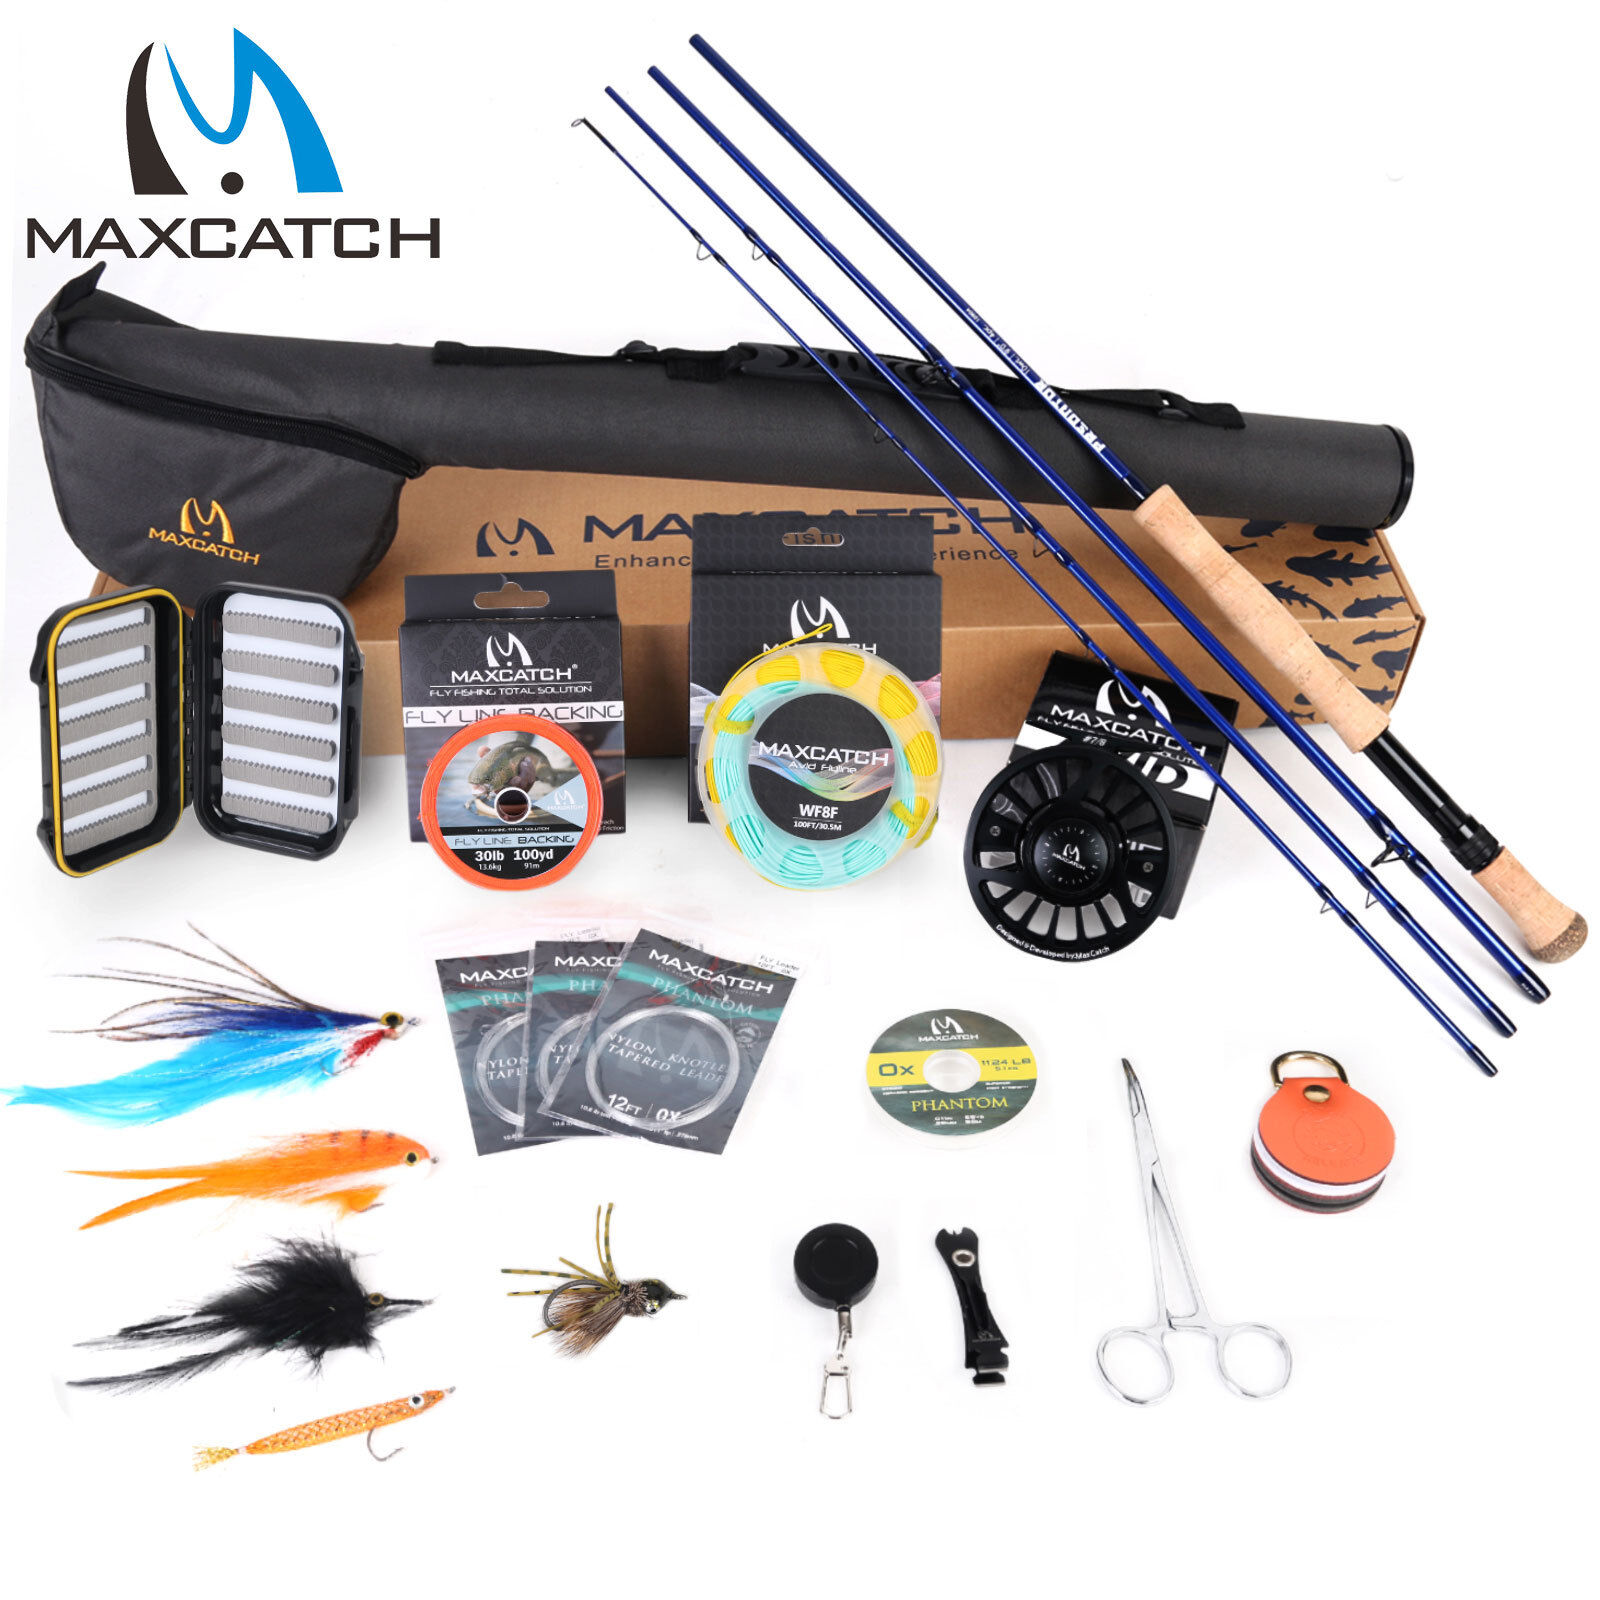 Maxcatch Saltwater Fly Rod and Reel Combo  Full Kit 9FT Fishing Complete Outfit  wholesale cheap